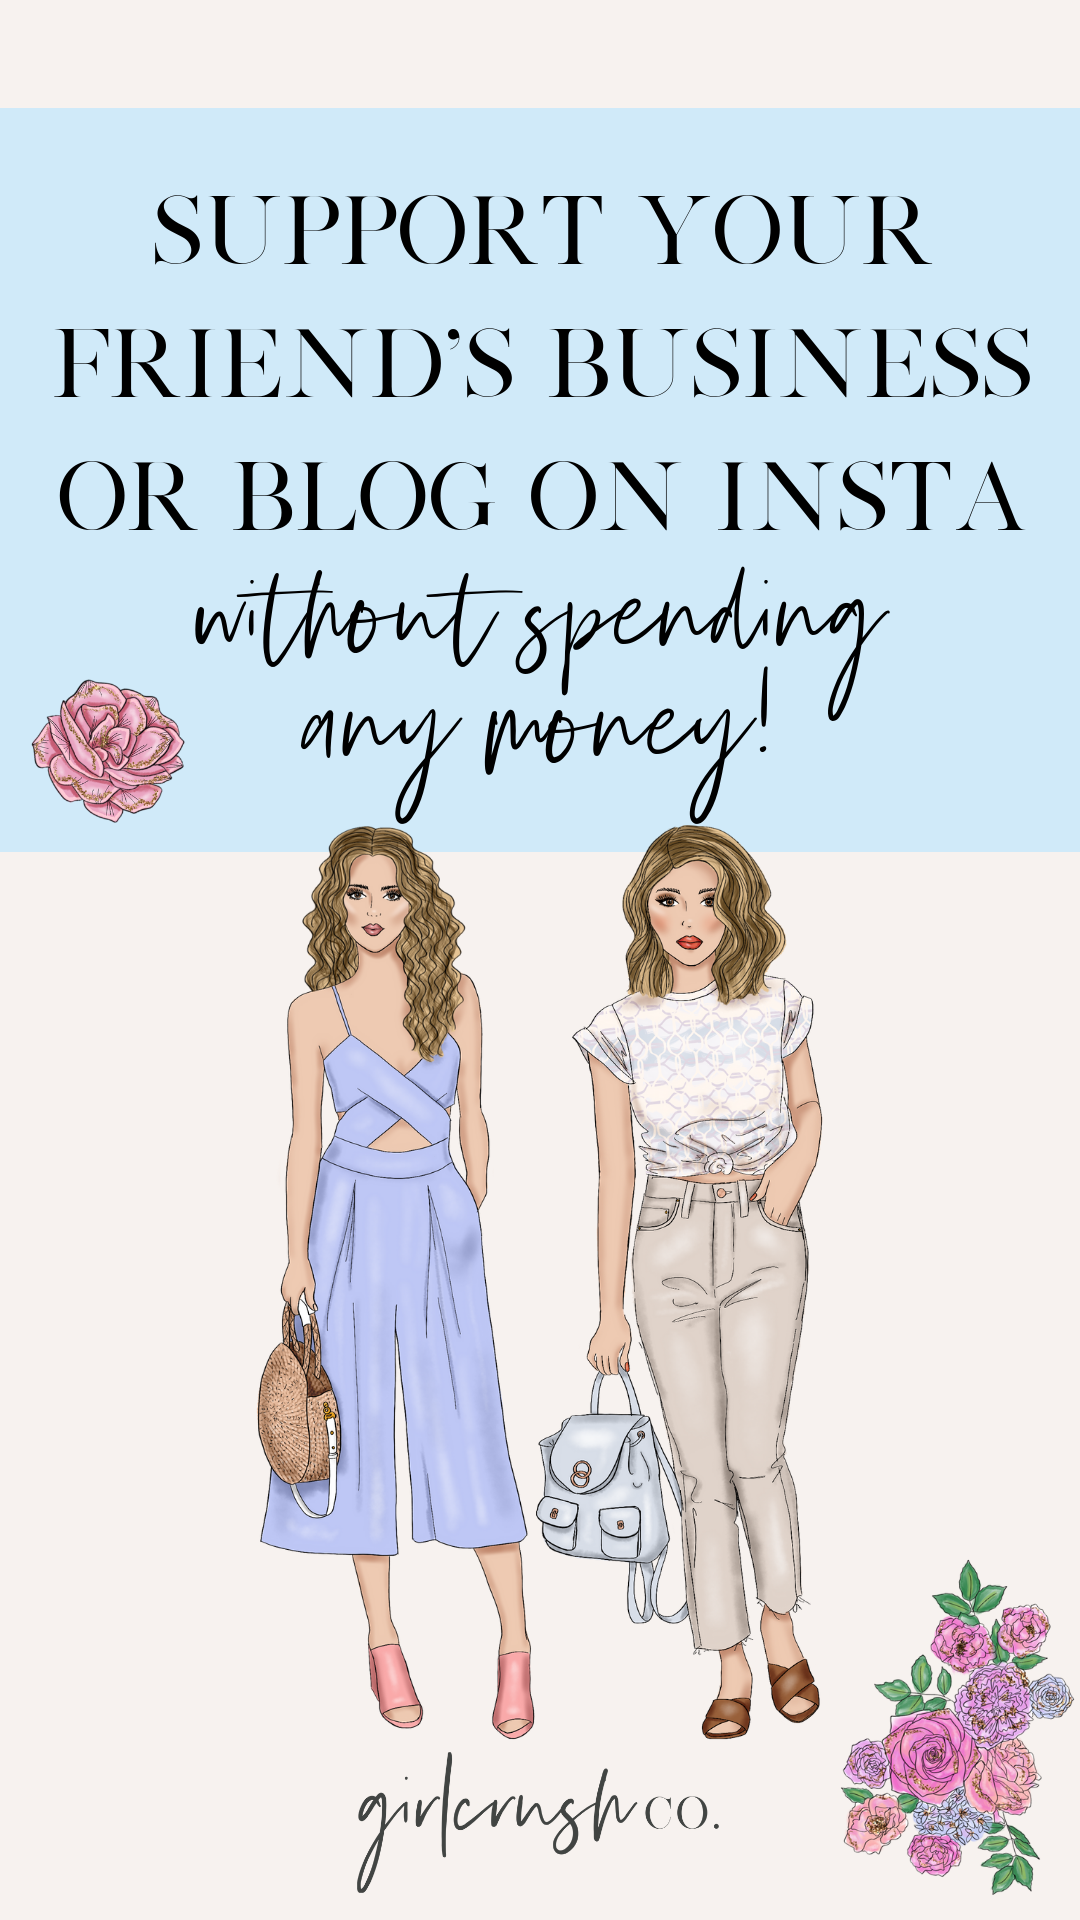 how to support other bloggers or business owners on instagram without spending any money